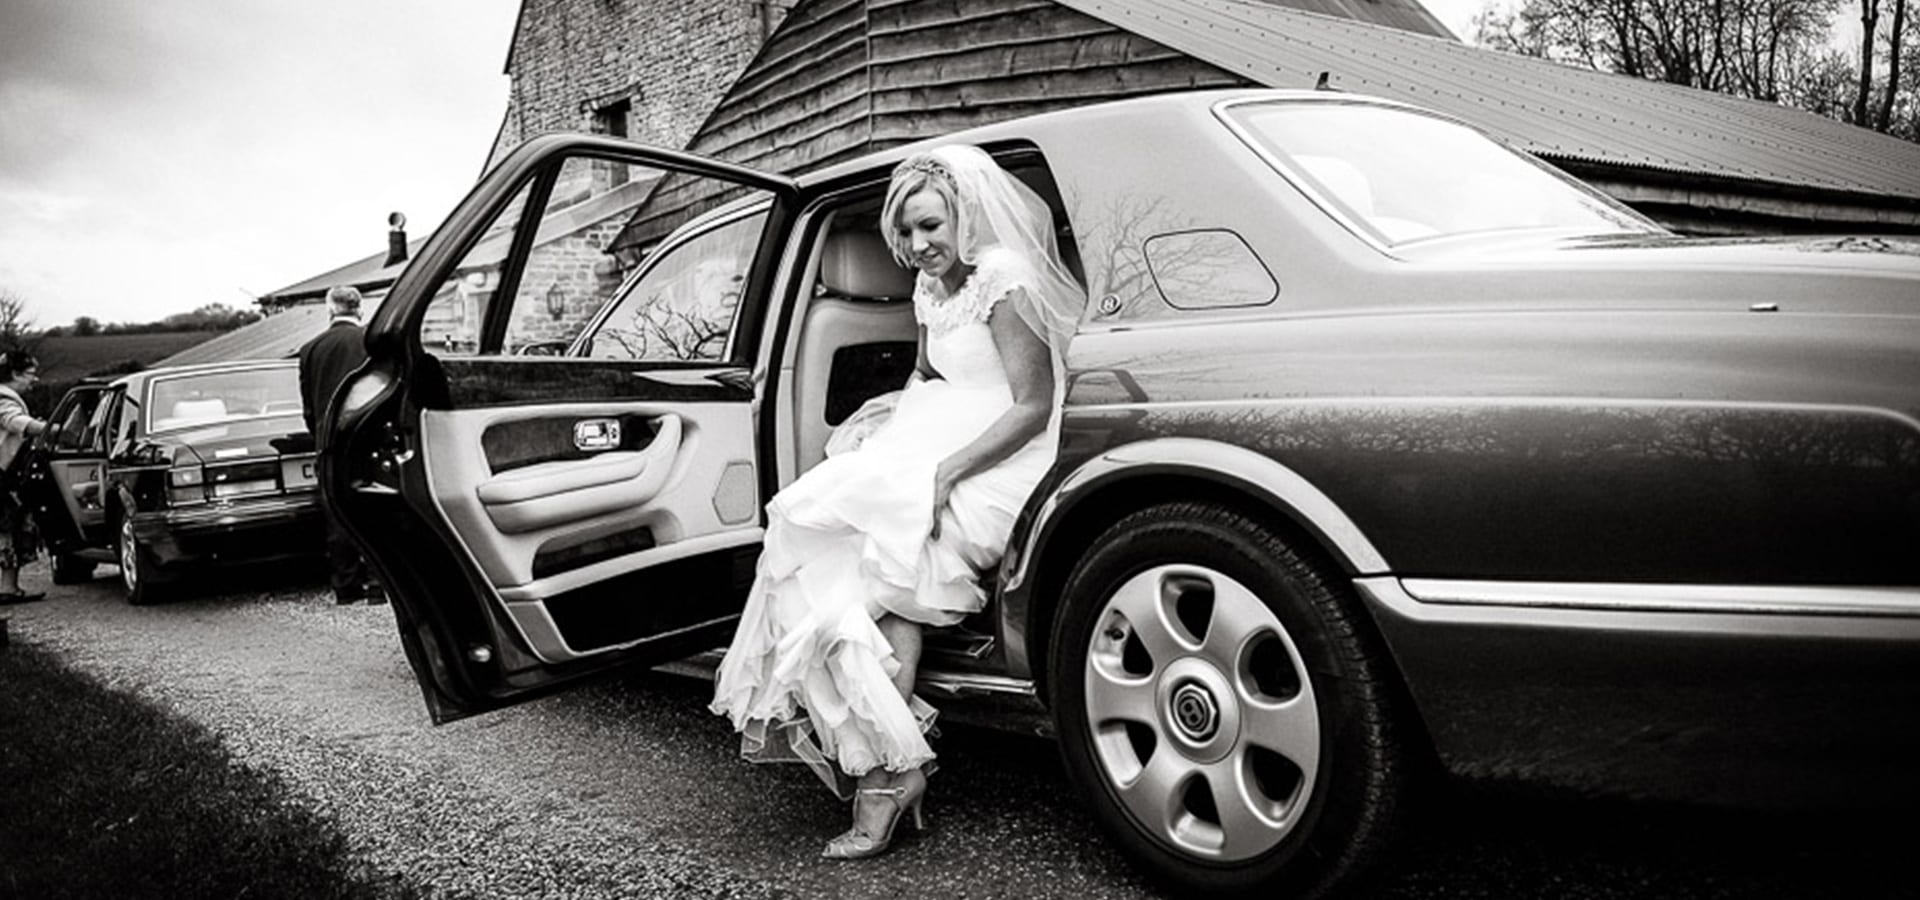 The Bentley Arnage wedding car is the perfect choice for the bridal car in Gloucestershire